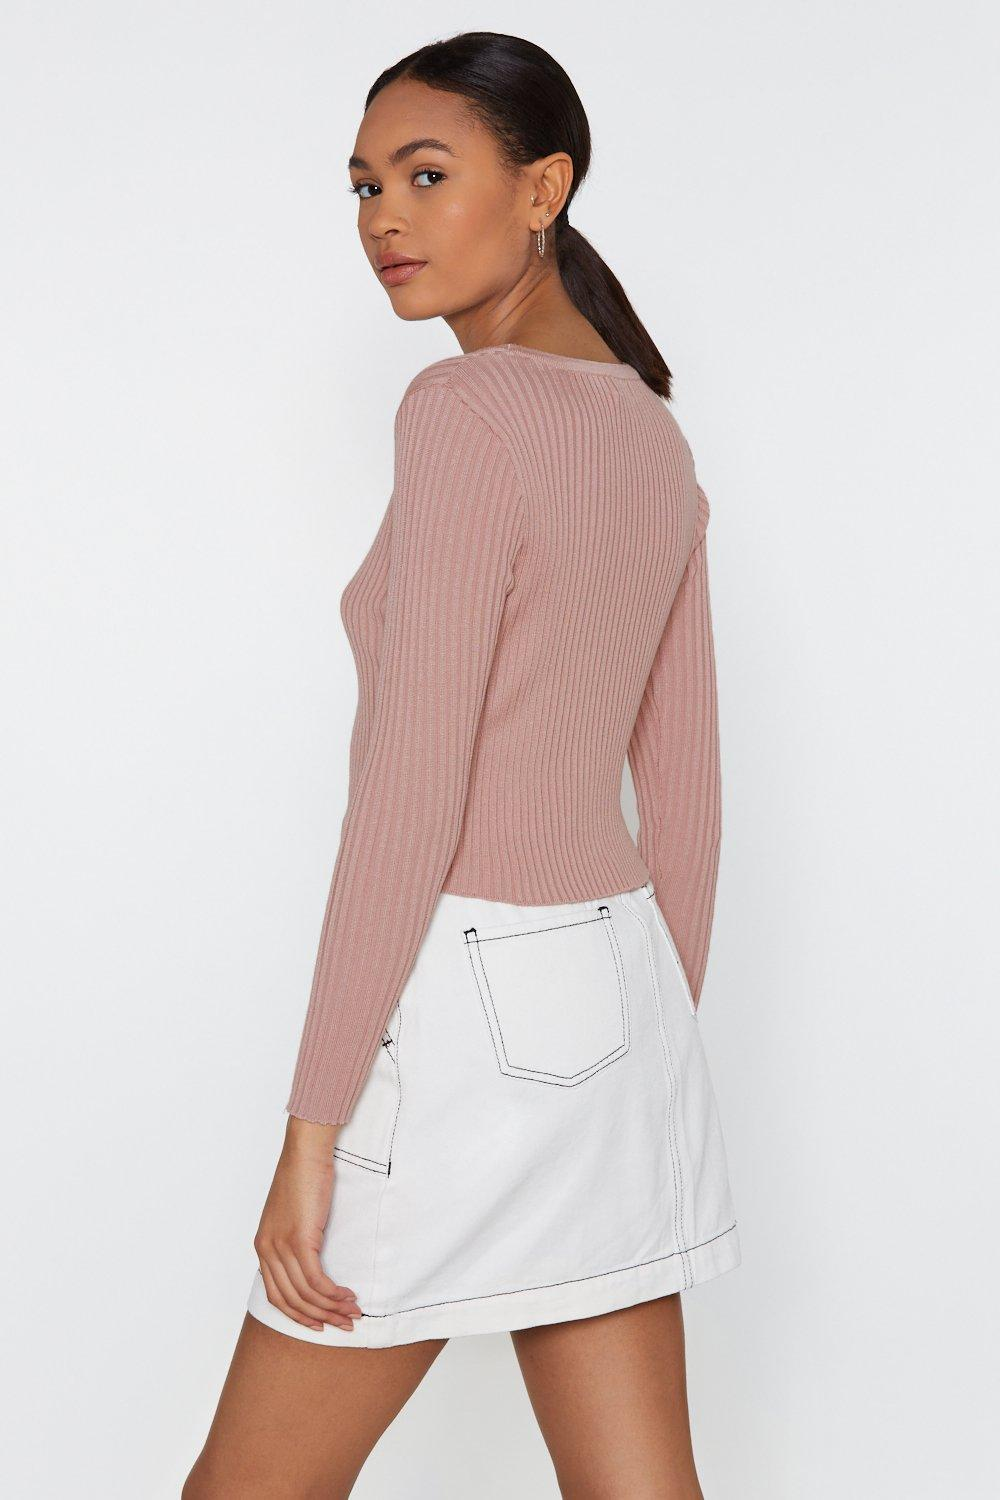 6aee6517803 No Chills Cropped Button-Down Cardigan   Shop Clothes at Nasty Gal!